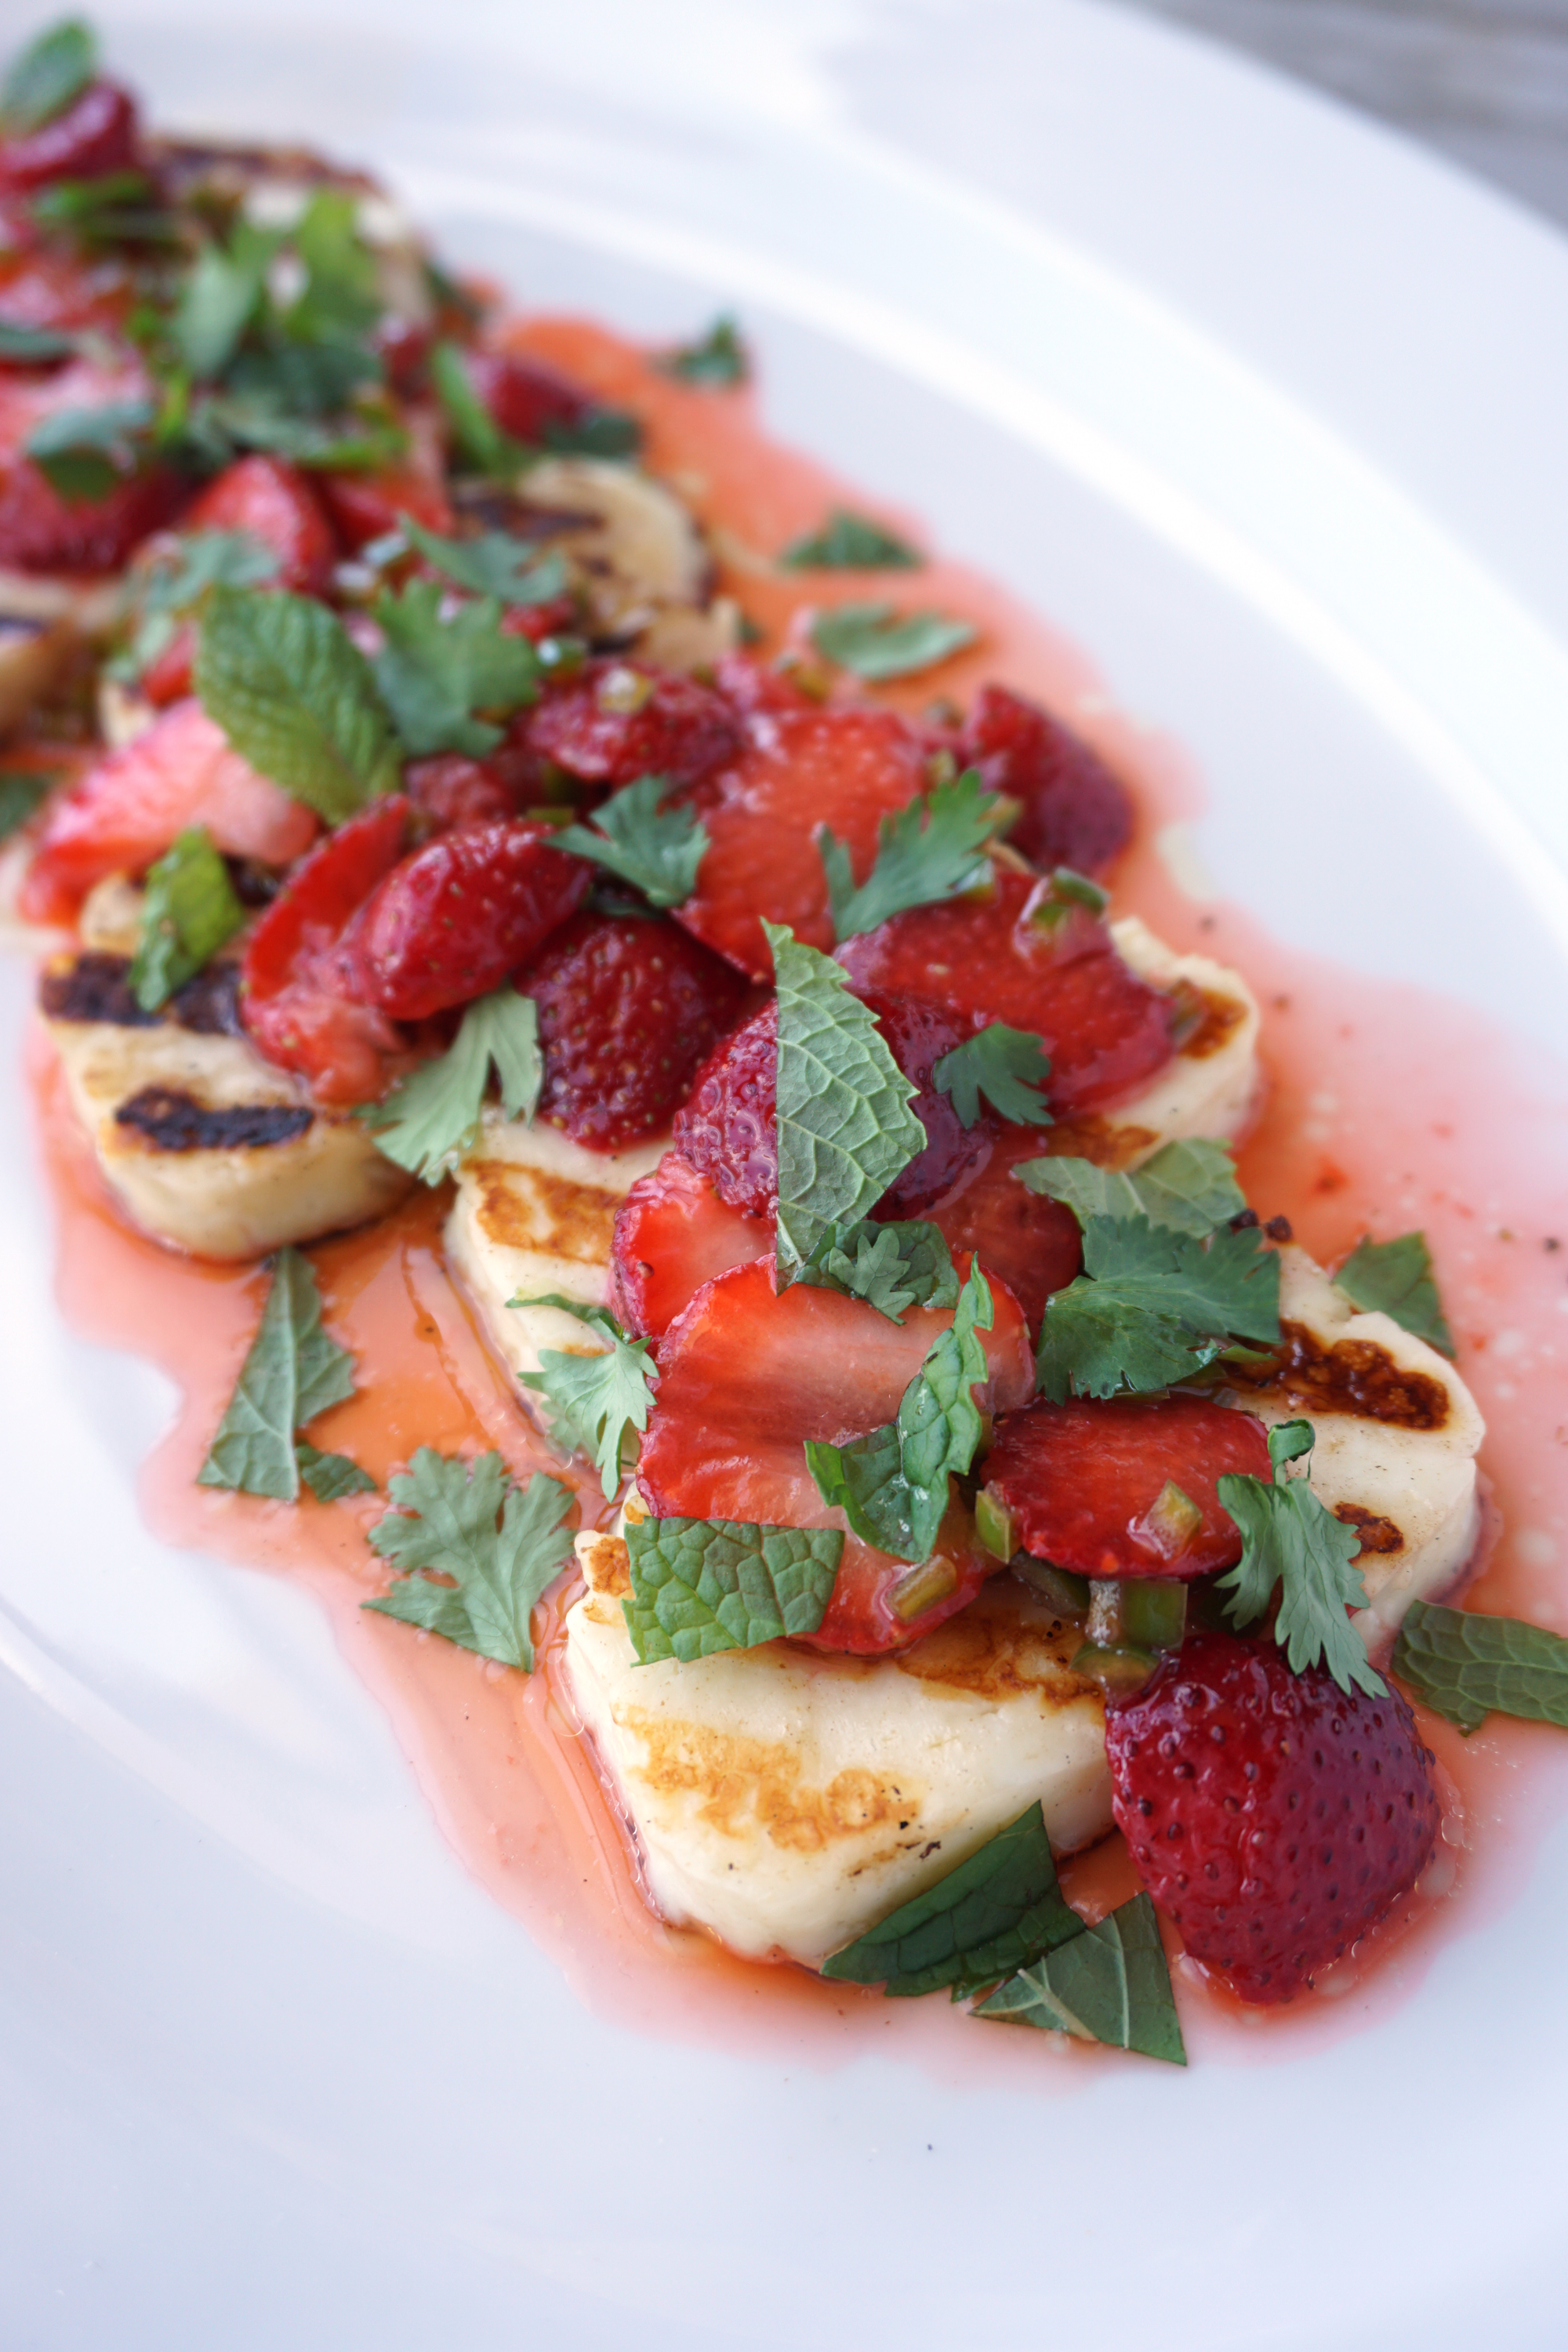 Warm, grilled Halloumi cheese with Herbed Strawberries